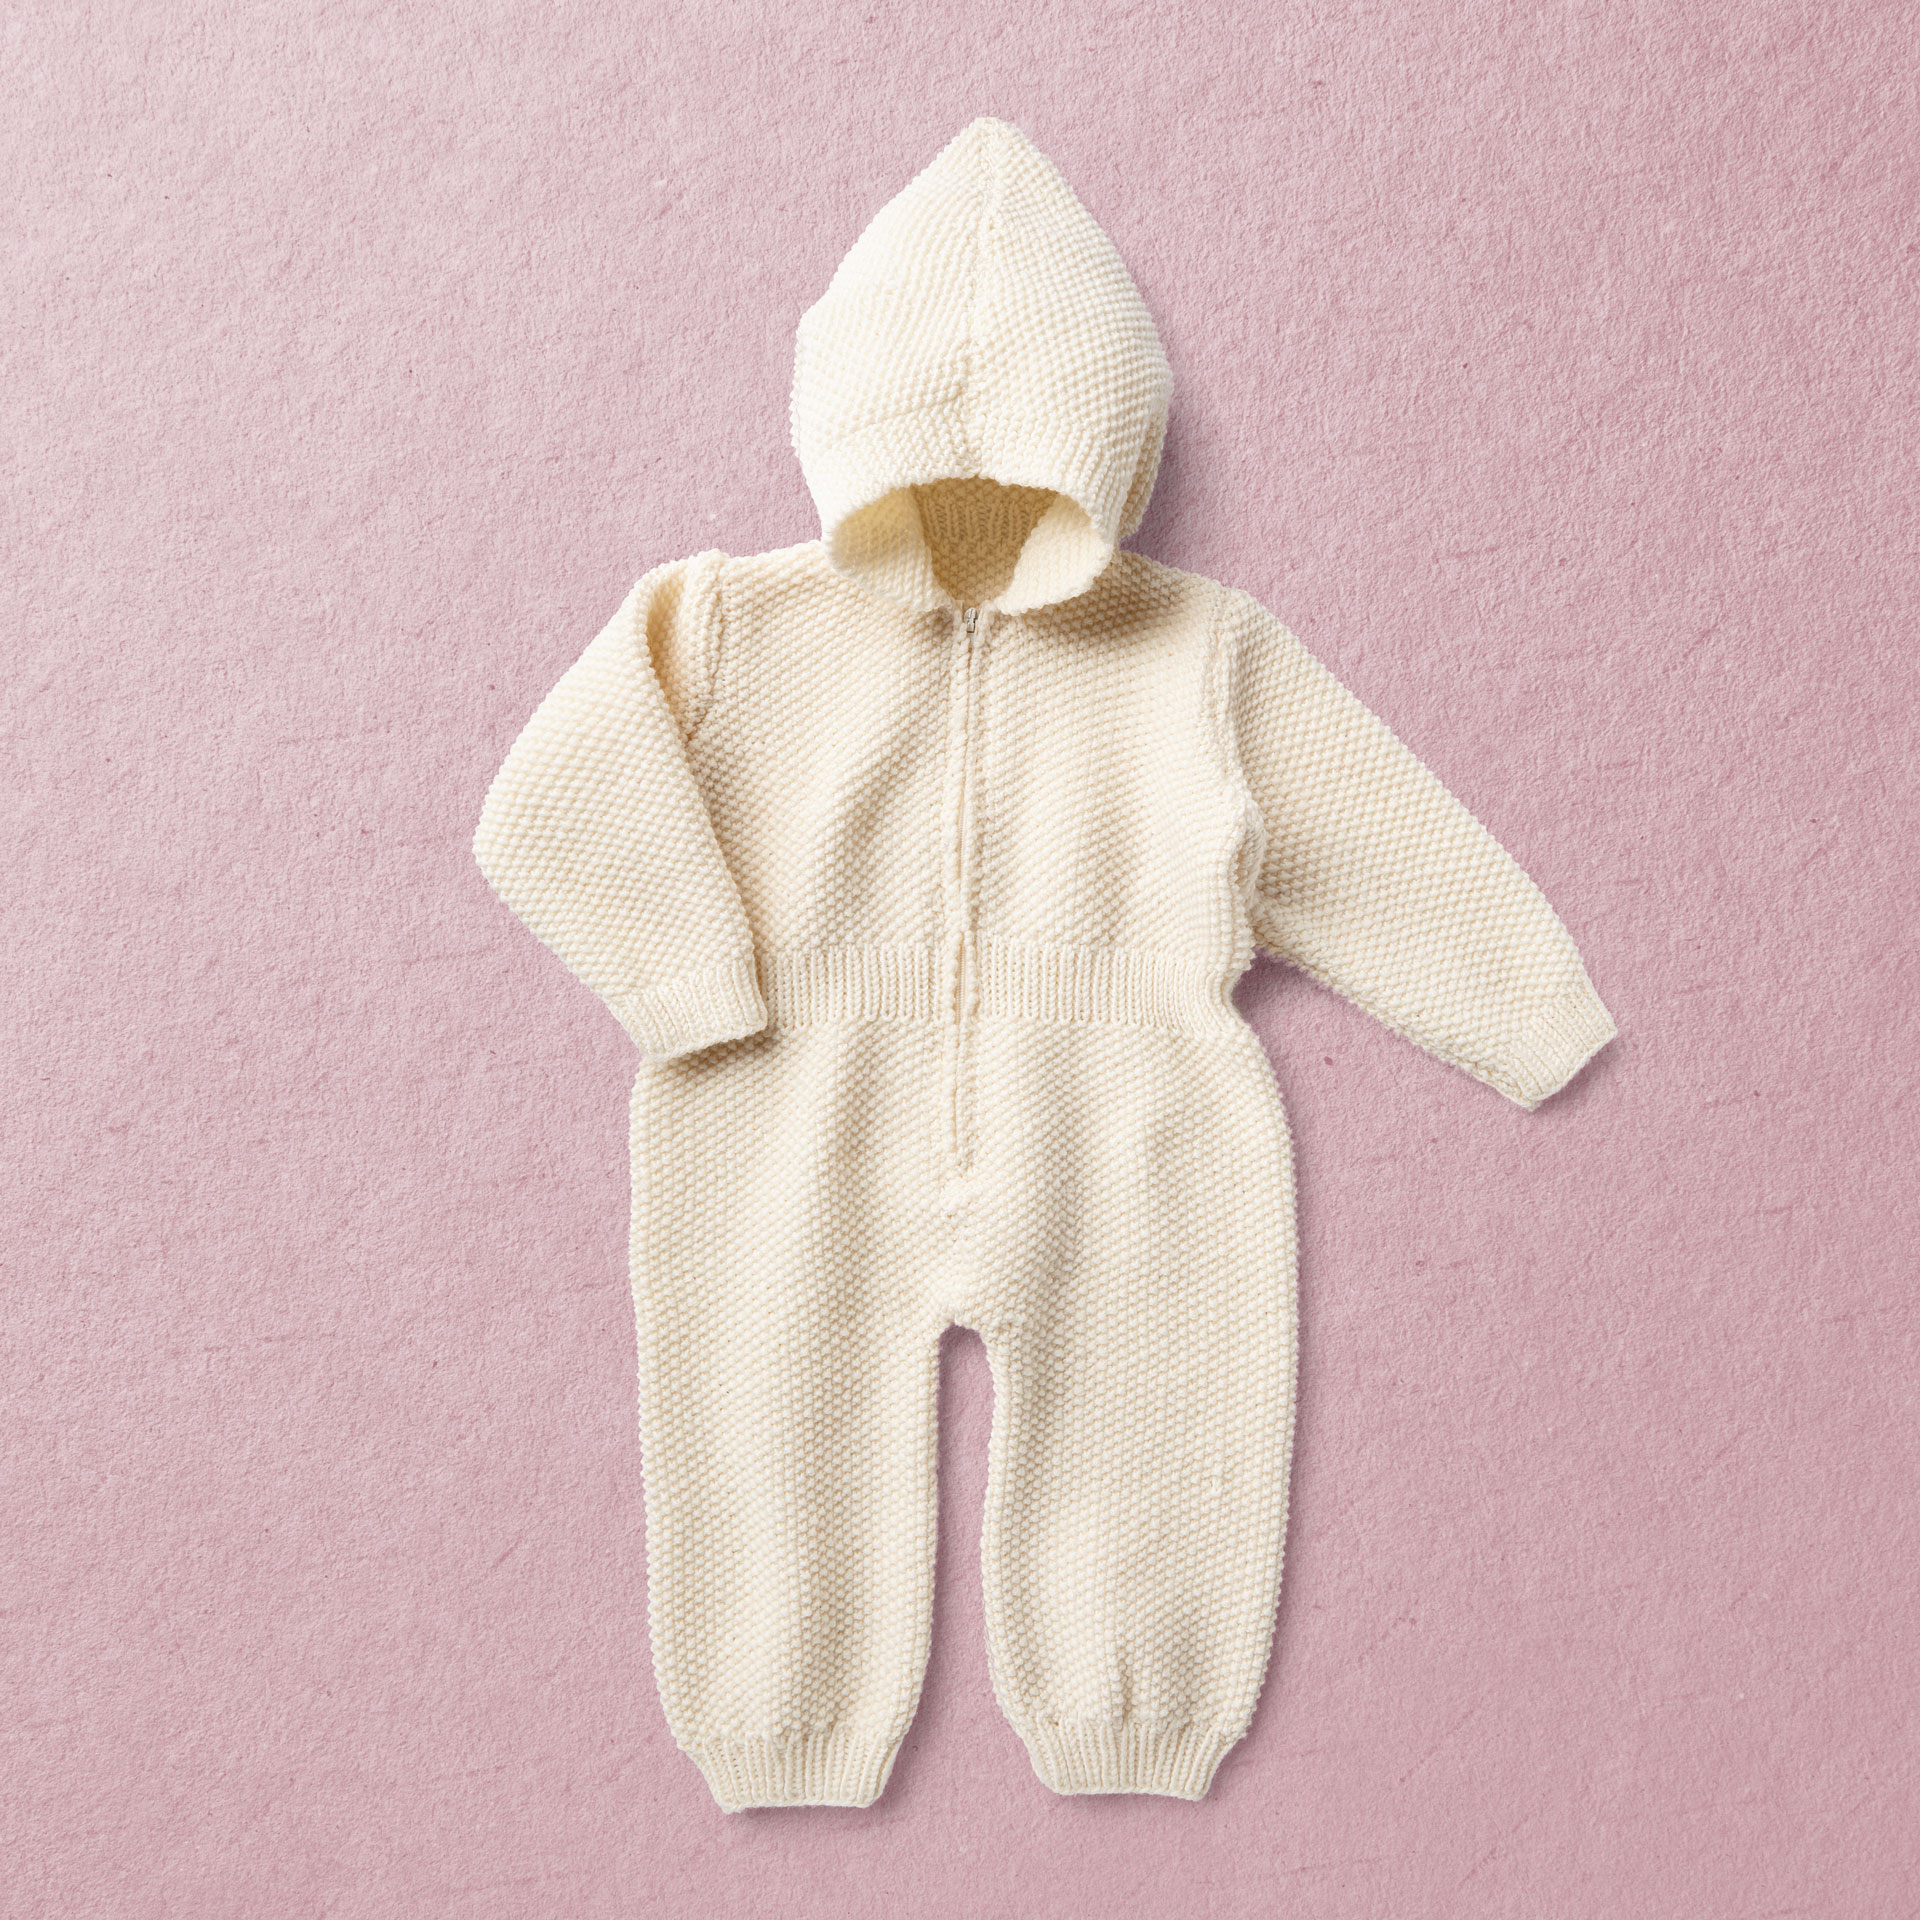 Merino Wool Van Beren baby knit hooded bodysuit TEDDY, off white